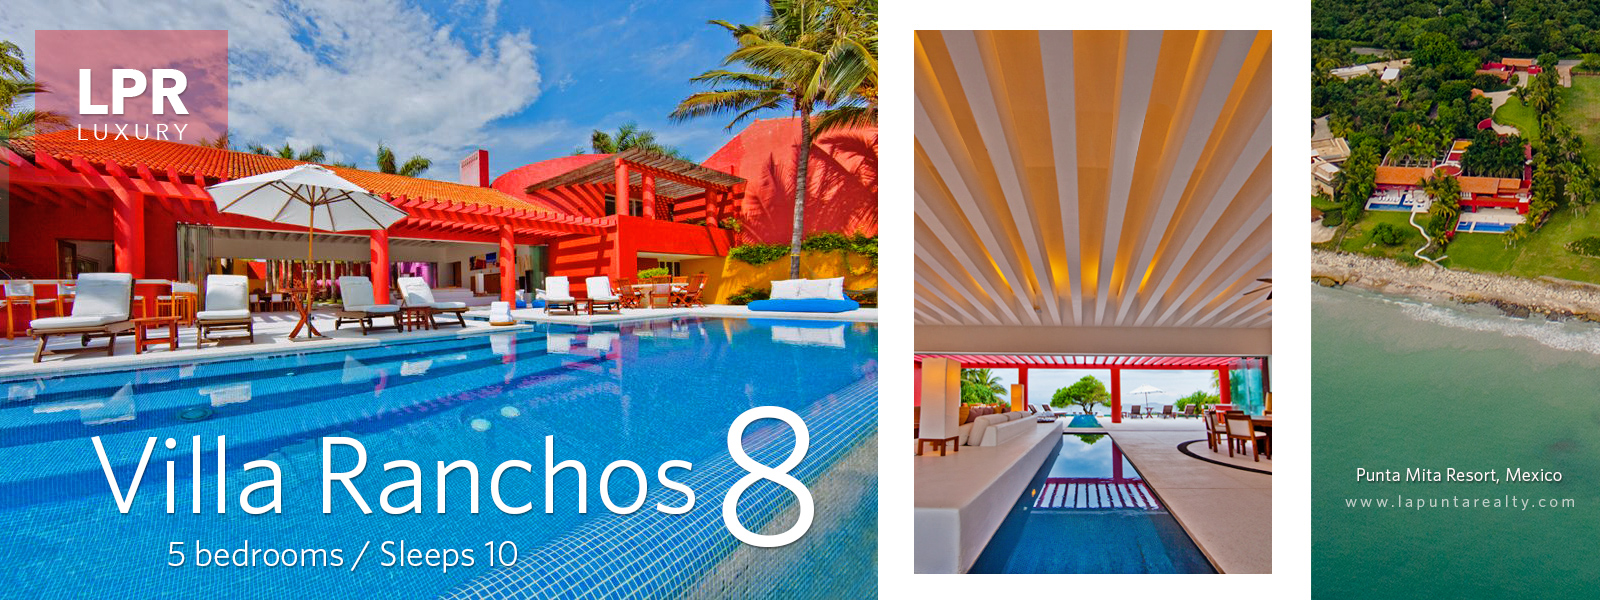 Villa Ranchos 8 - Punta Mita Mexico - Luxury Resort Real Estate and Vacation Rentals Villas